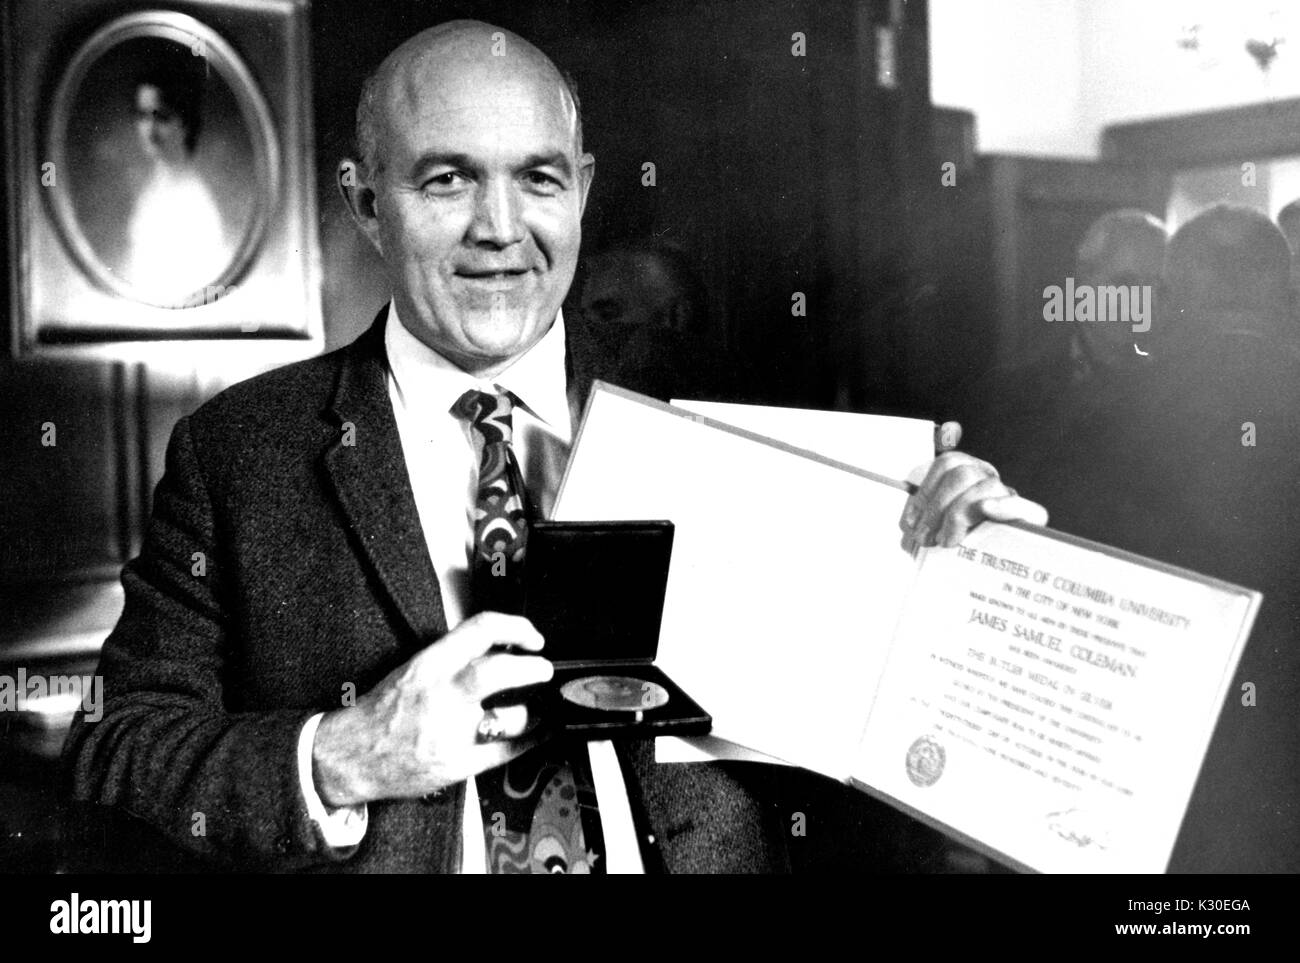 Sociological theorist and professor at Johns Hopkins University James Samuel Coleman holding up a medal and certificate, 1965. - Stock Image